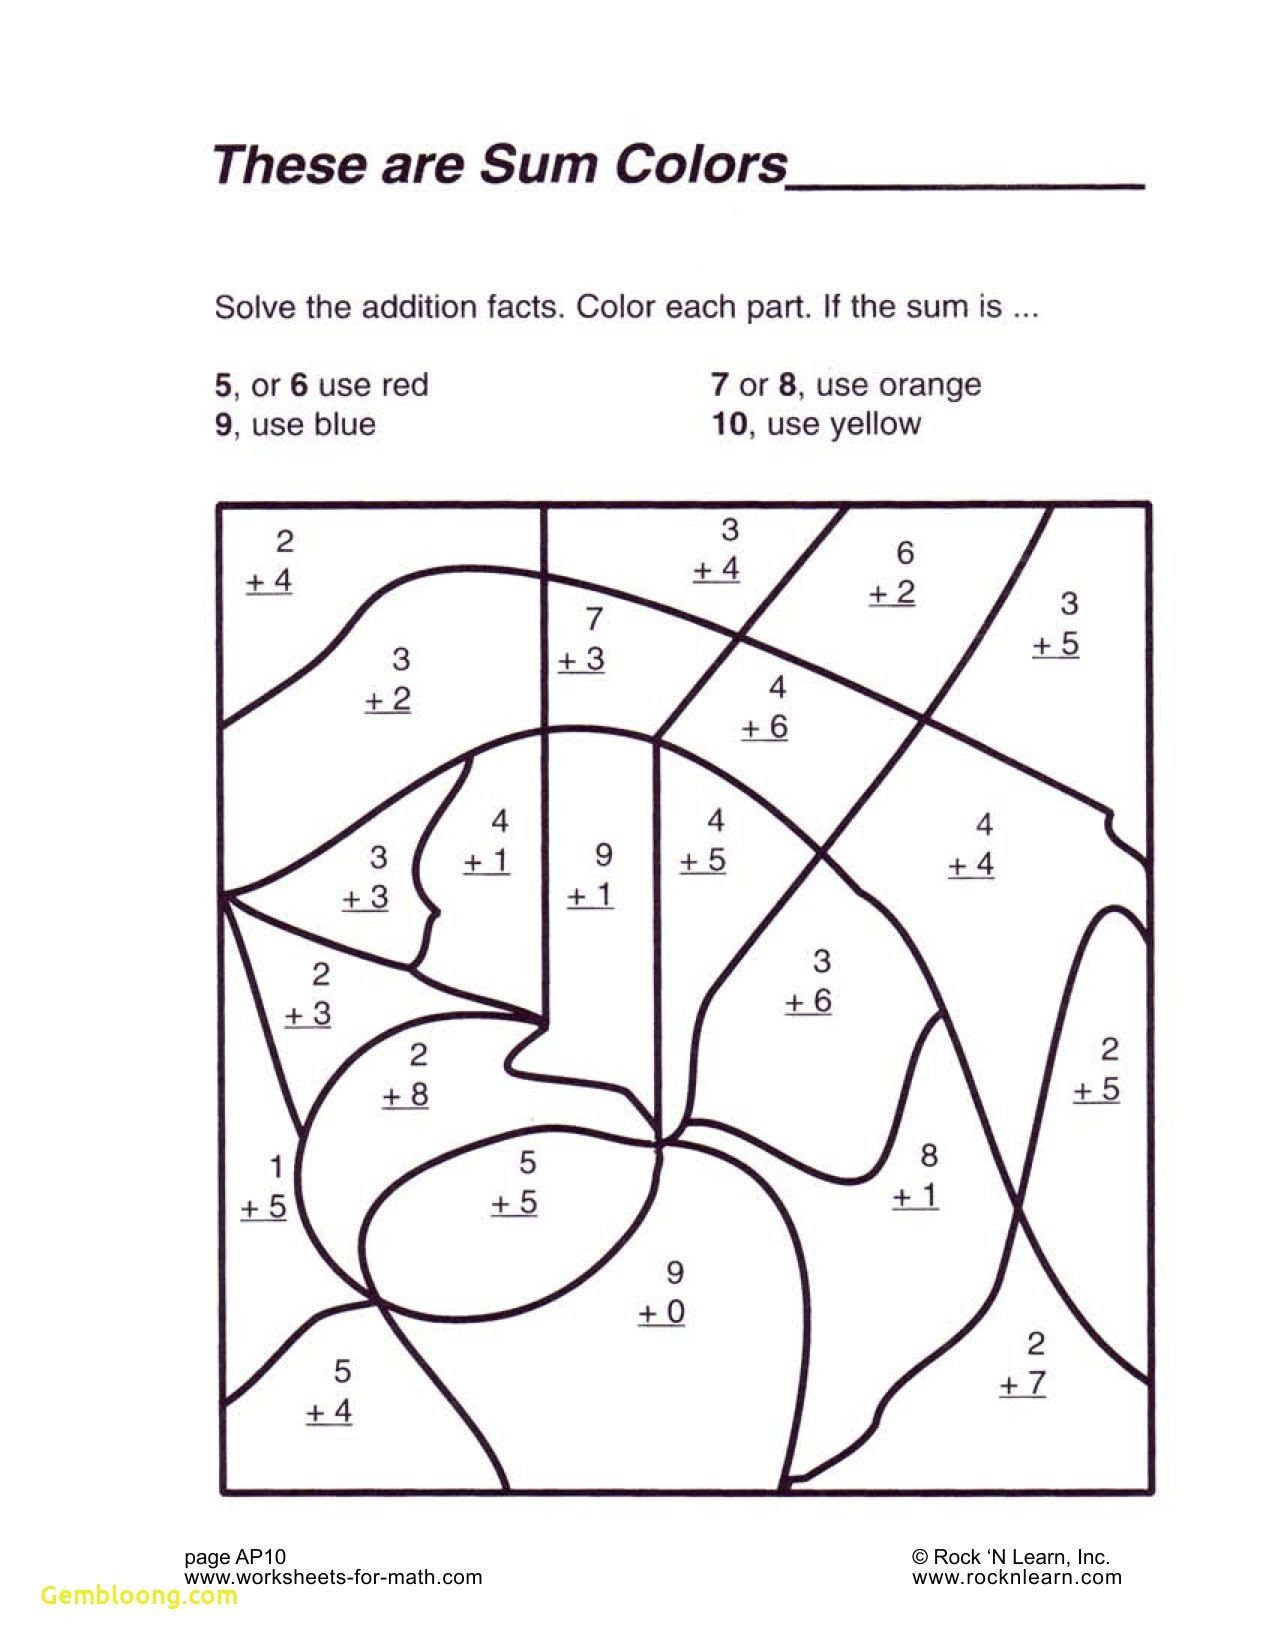 Summary Worksheets 2nd Grade Making Change Worksheets Grade 2 1st Grade Math Enrichment